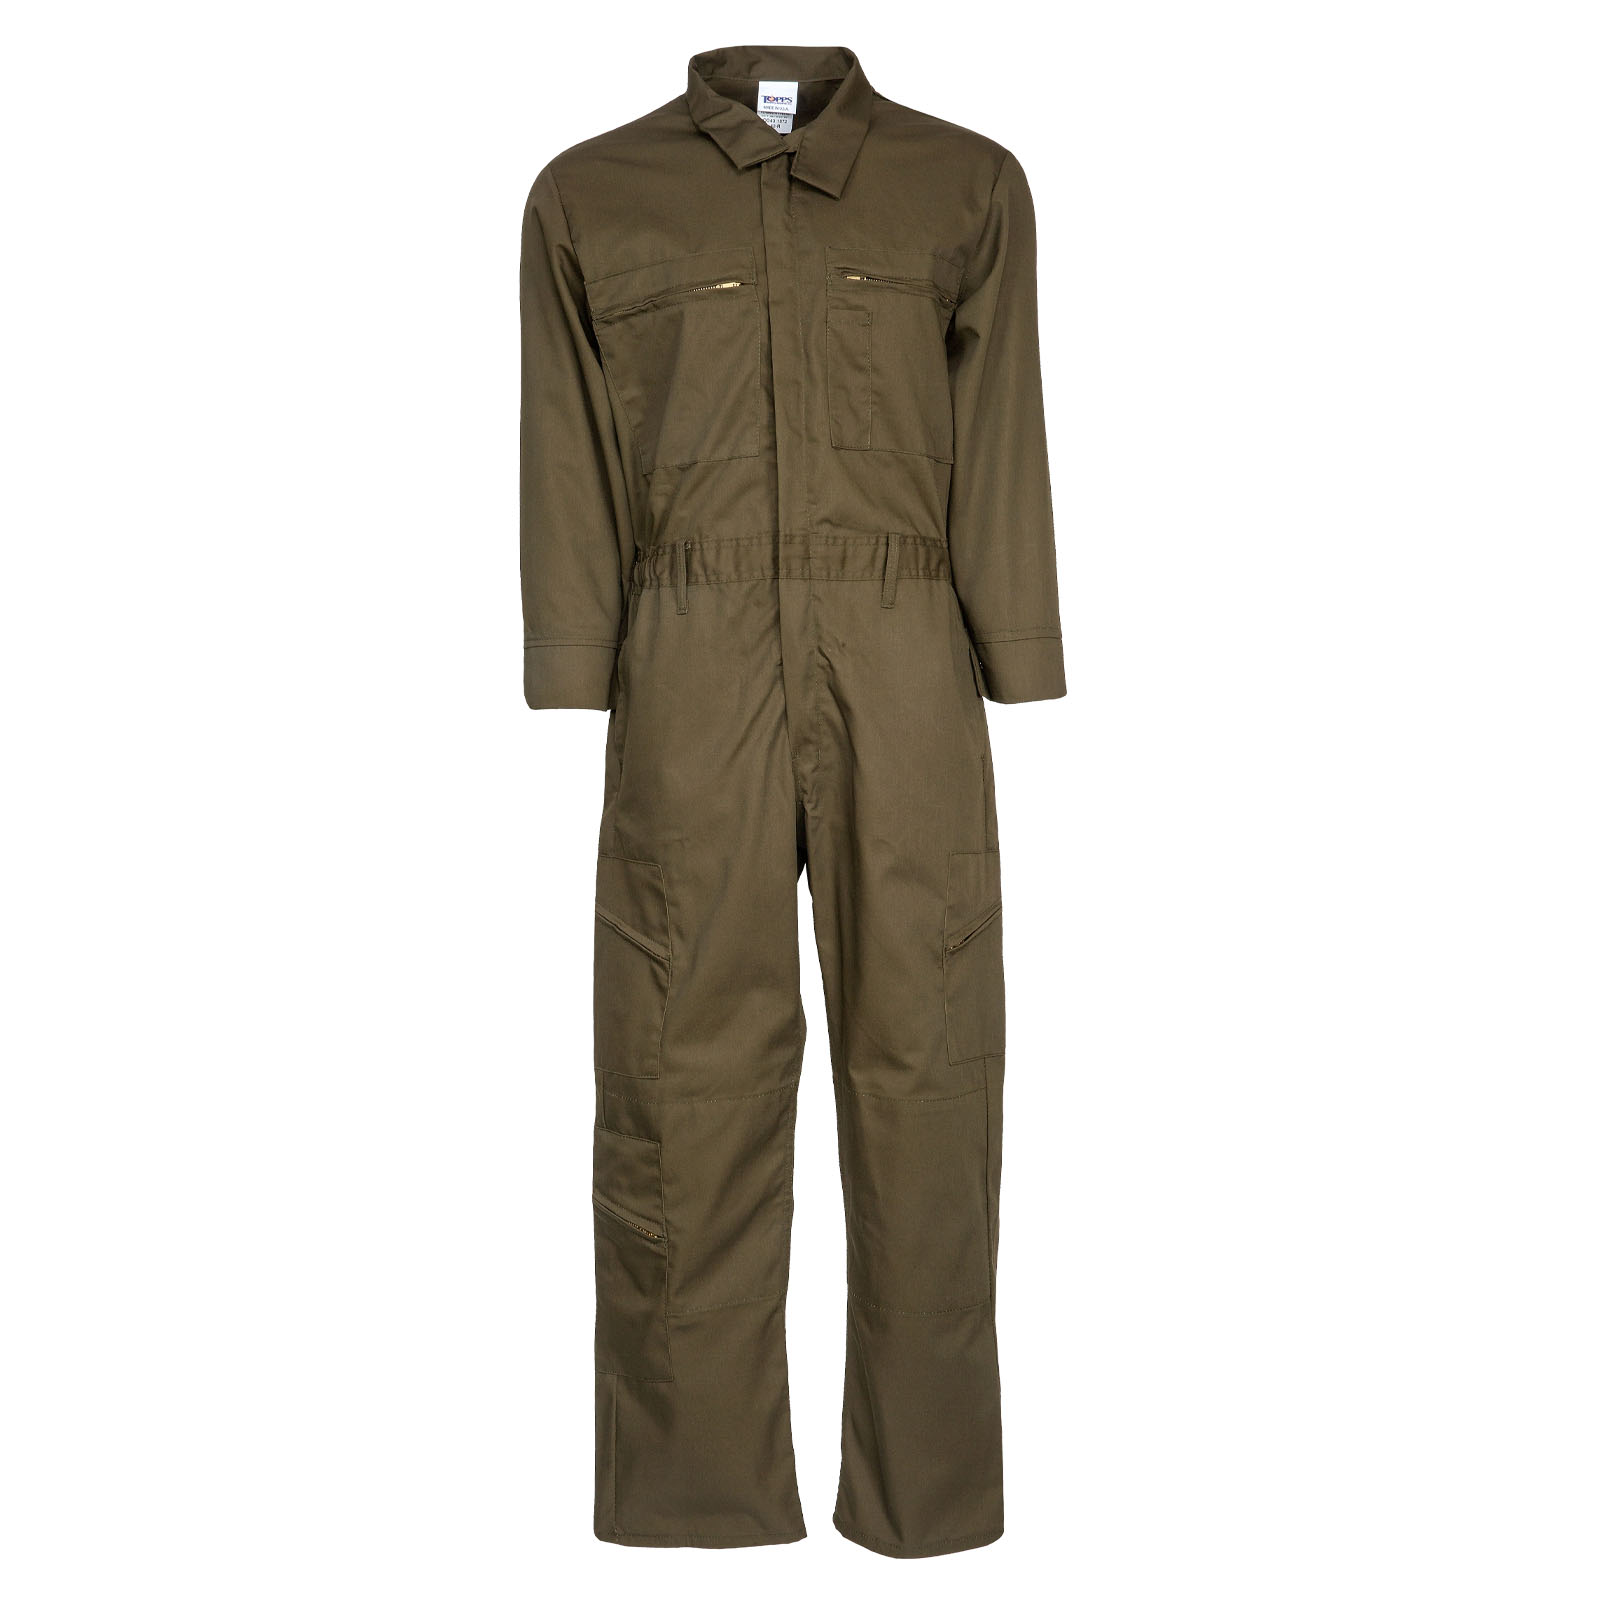 65/35 CDC Tactical Wear Coverall-